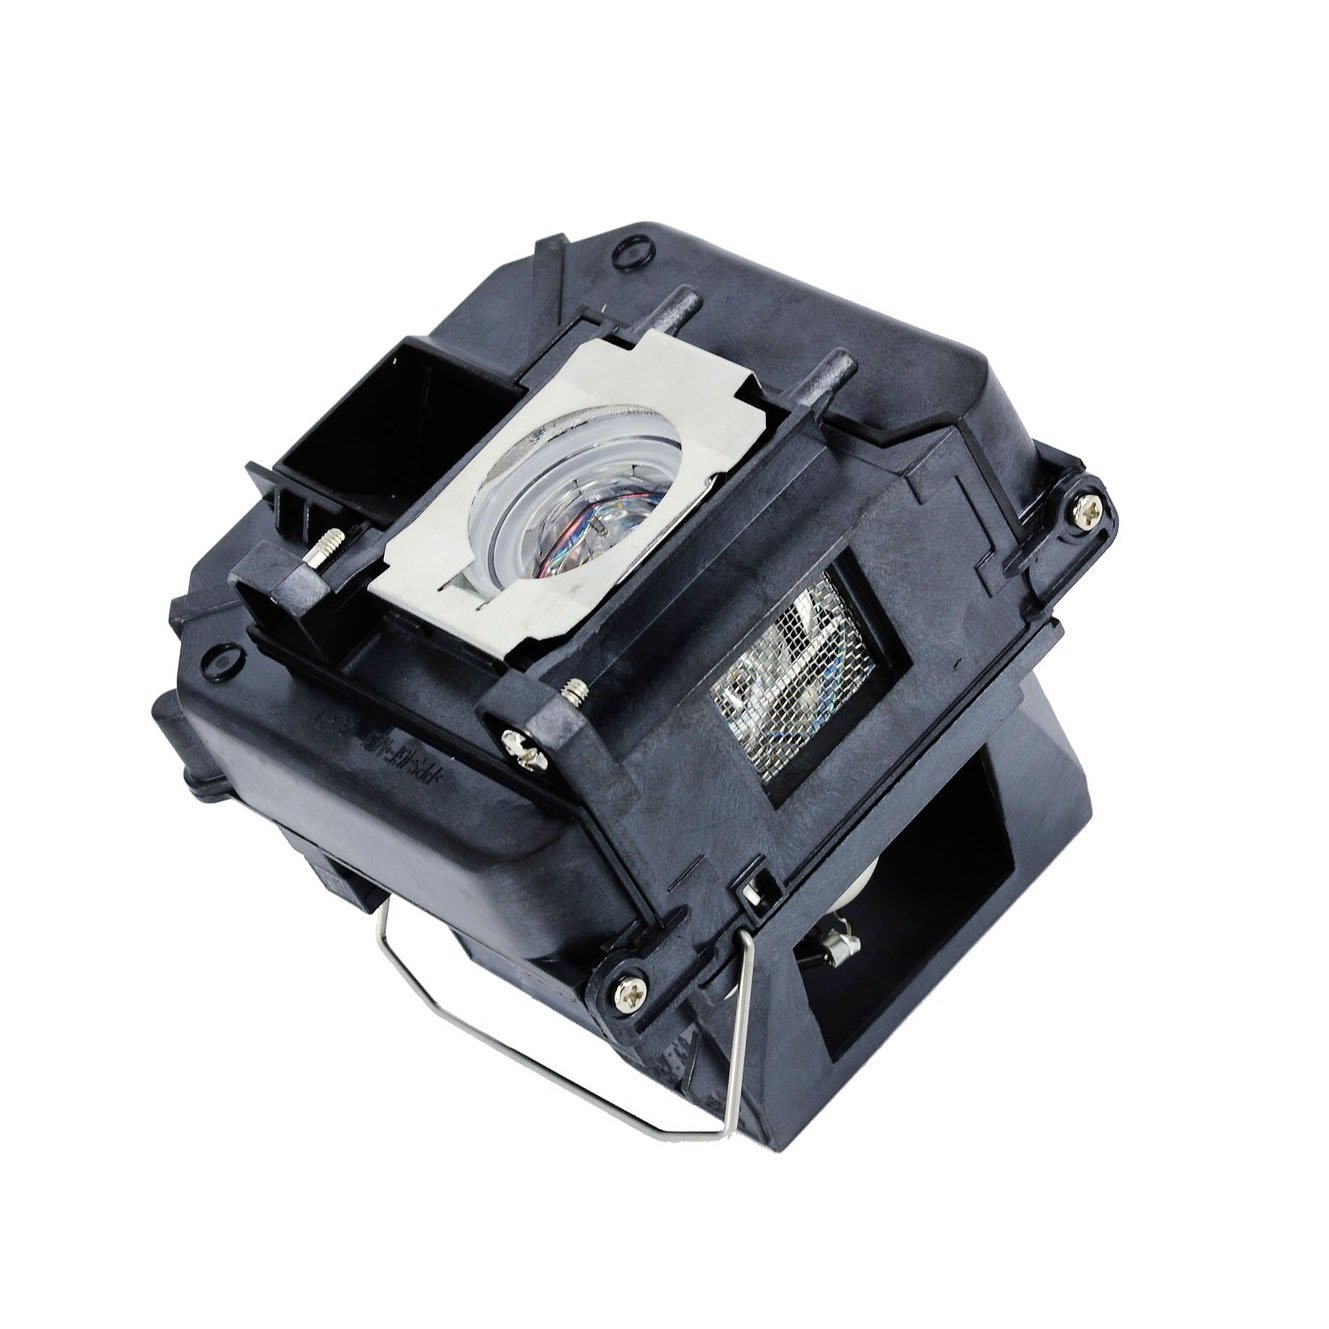 ФОТО ELPLP67 V13H010L67 Lamp for Epson EX7210 EB-W12 EH-TW480 EX5210 EX1261W VS210 VS310 Projector Bulb Lamp with housing